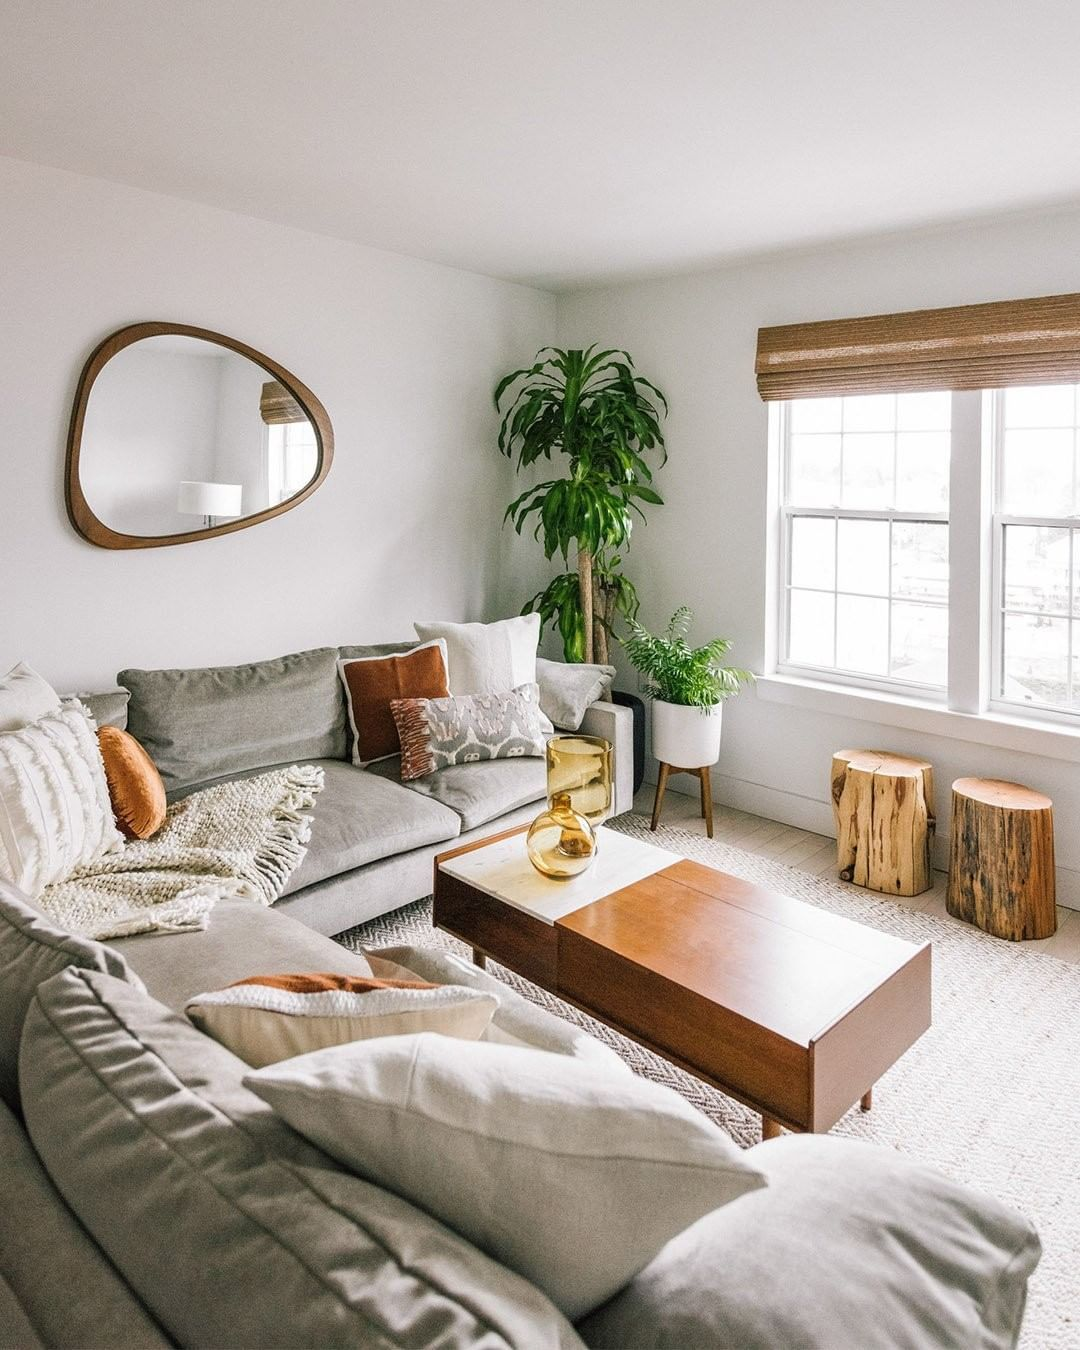 West Elm On Instagram Natural Hues Waterfront Views See How Westelmscarsdale S Designcrew Used A Harmo Home Decor Living Decor Living Room Spaces